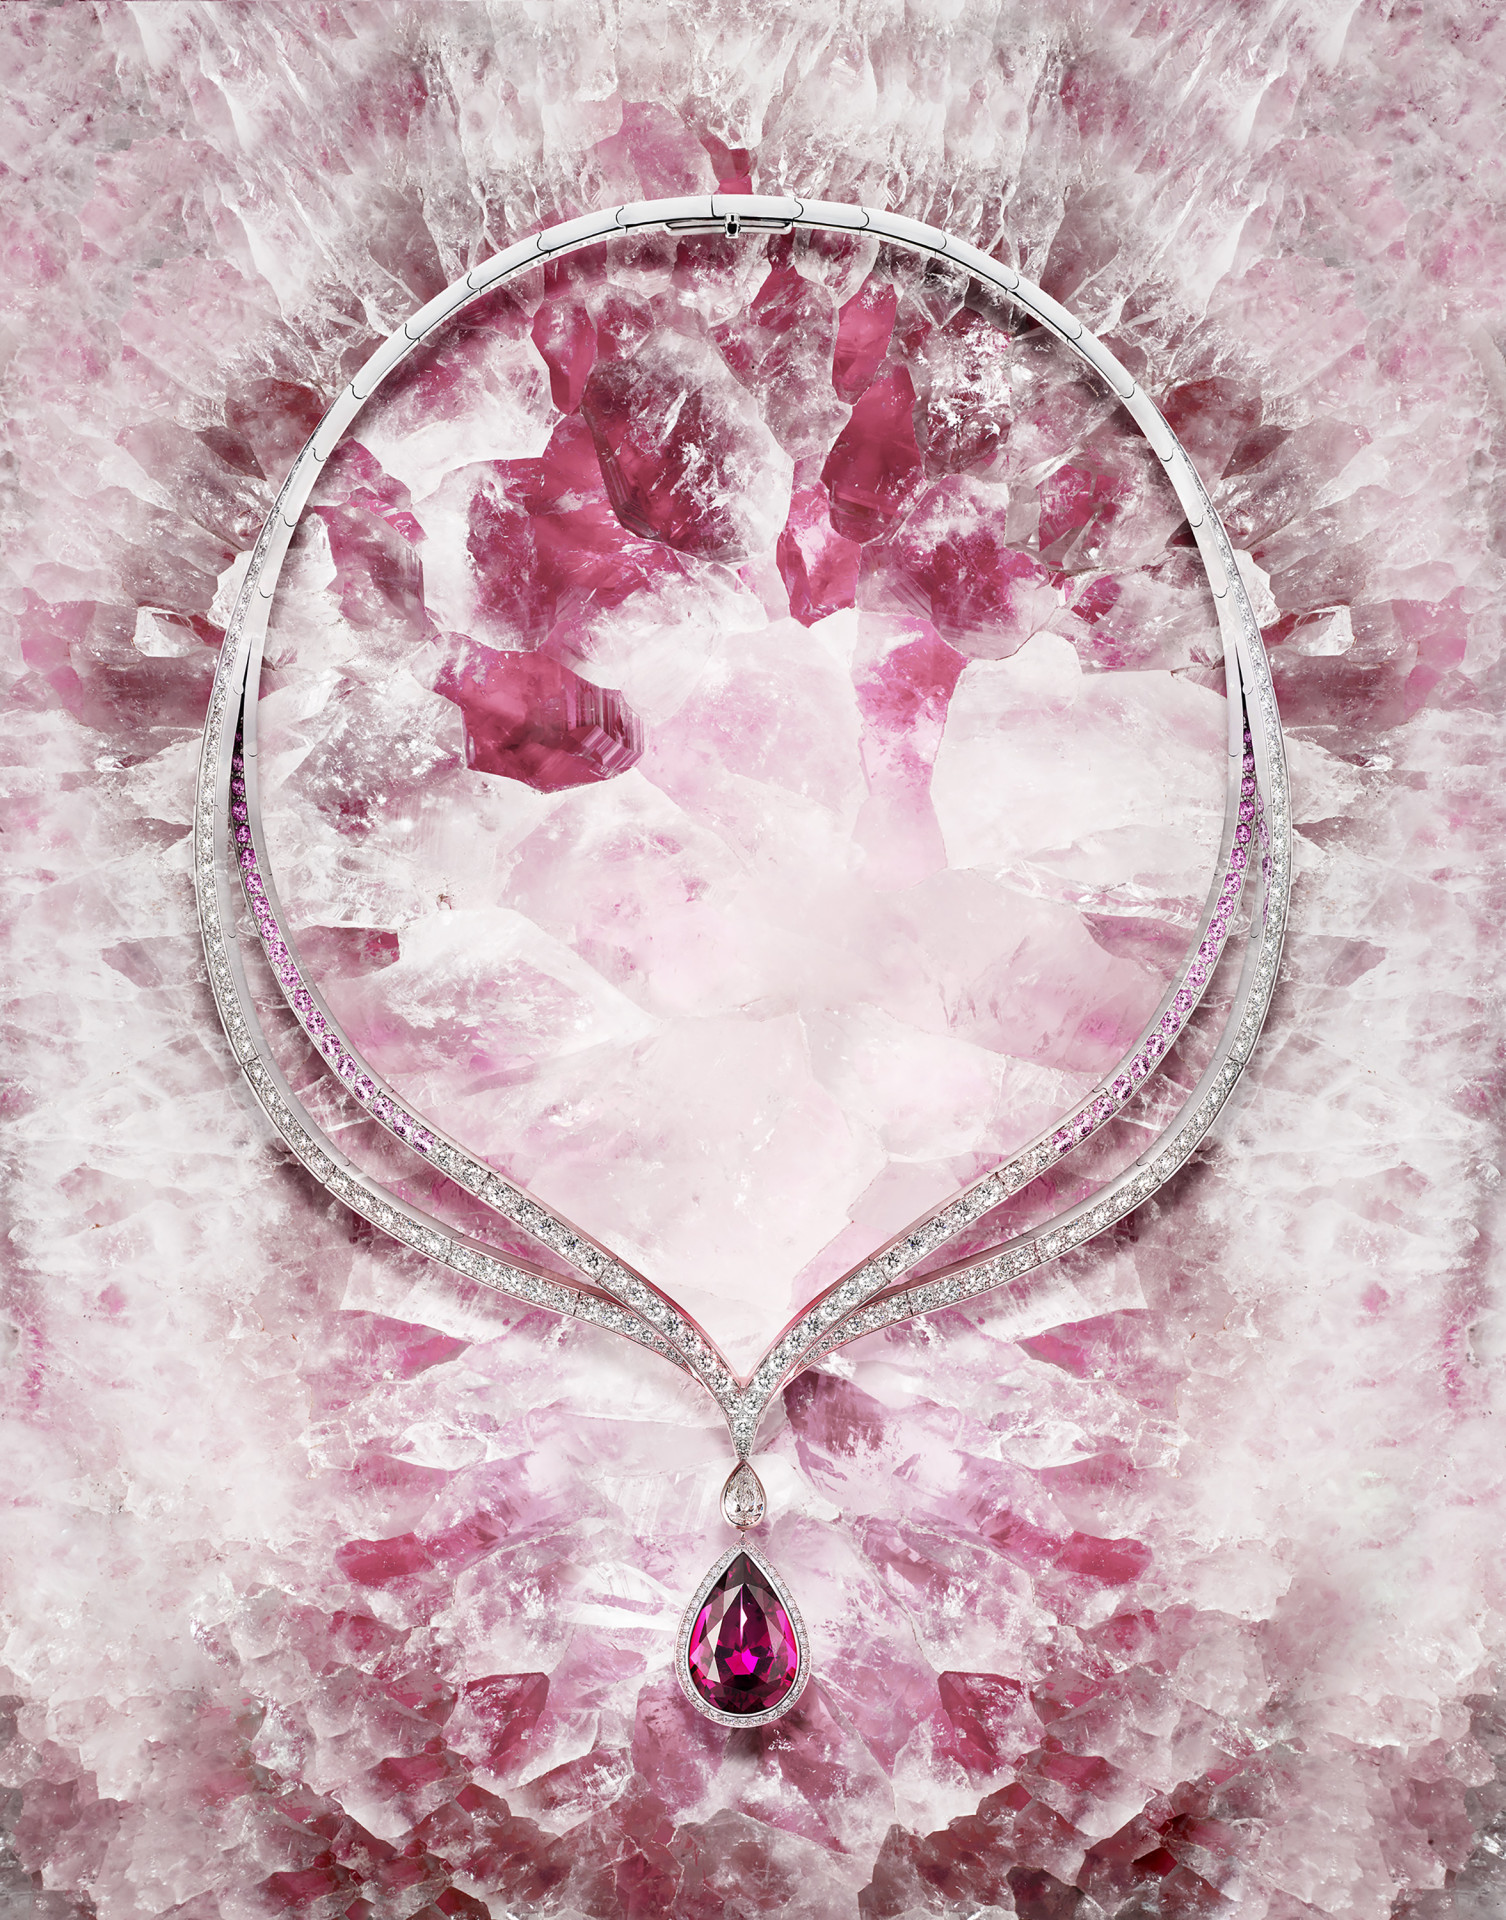 MB PIAGET collier image